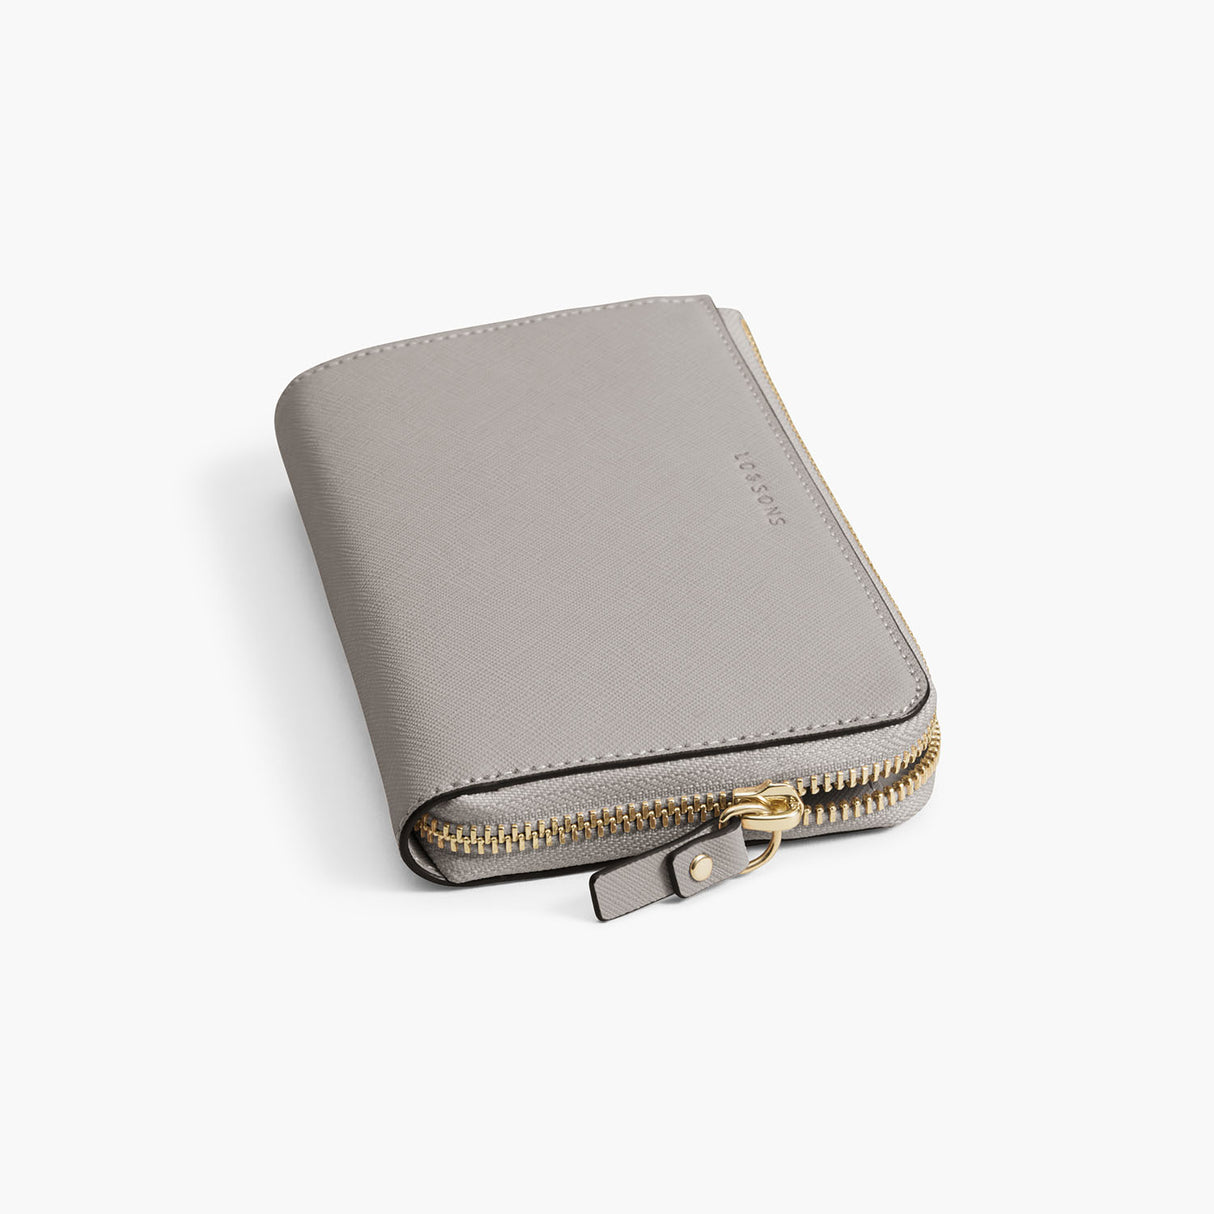 Zipper Detail - The Leather Wallet - Saffiano Leather - Light Grey / Gold / Grey - Small Accessory - Lo & Sons